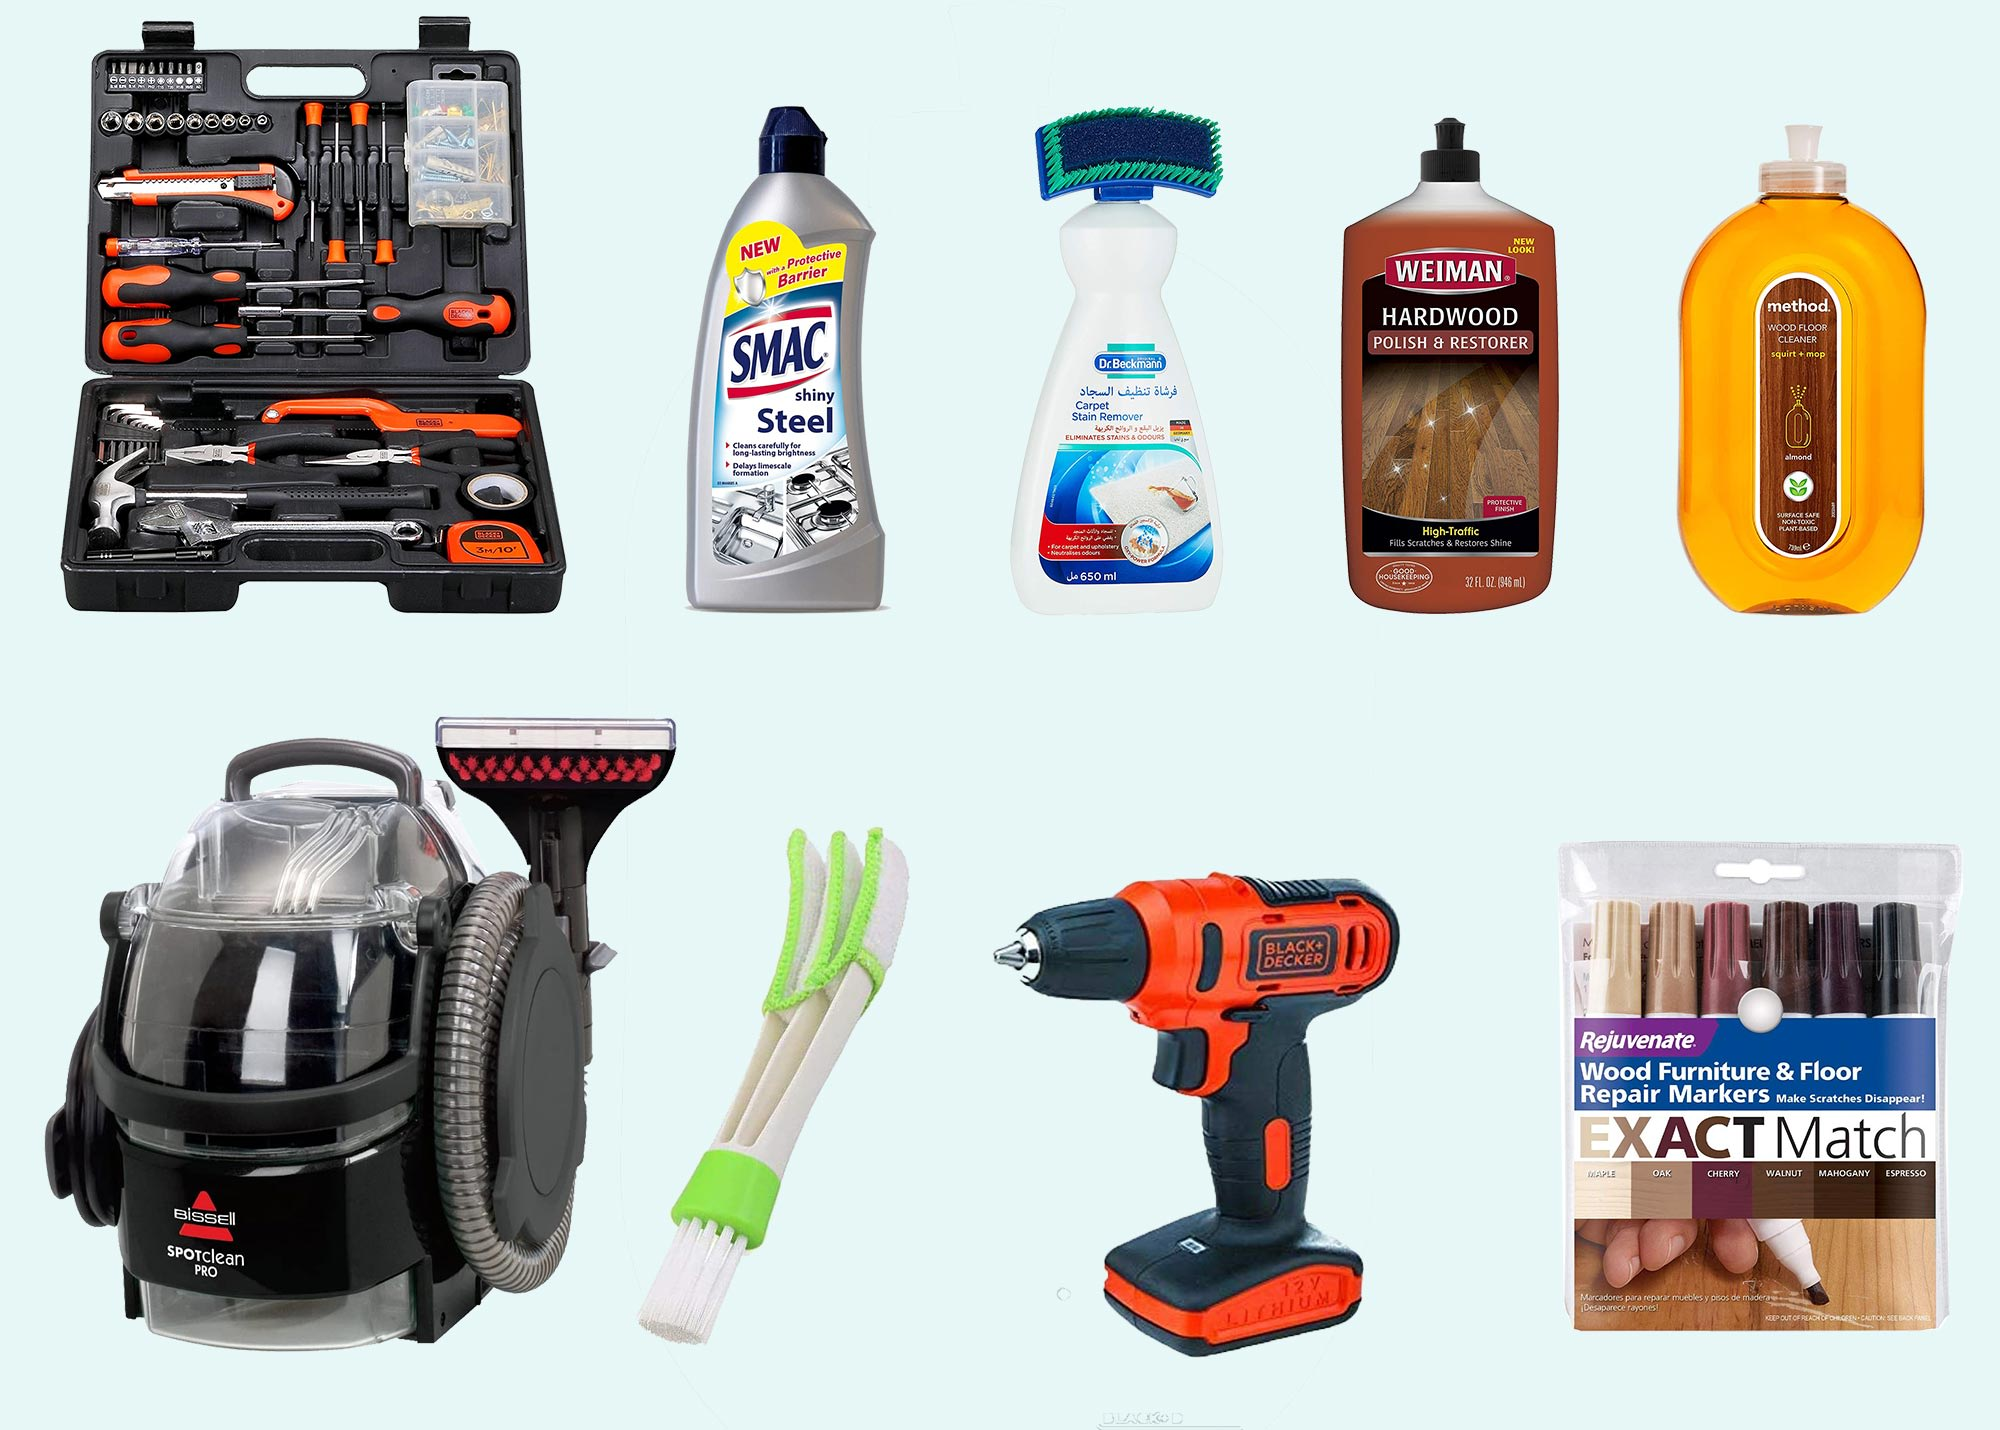 Best-Home-Improvement-Products In UAE